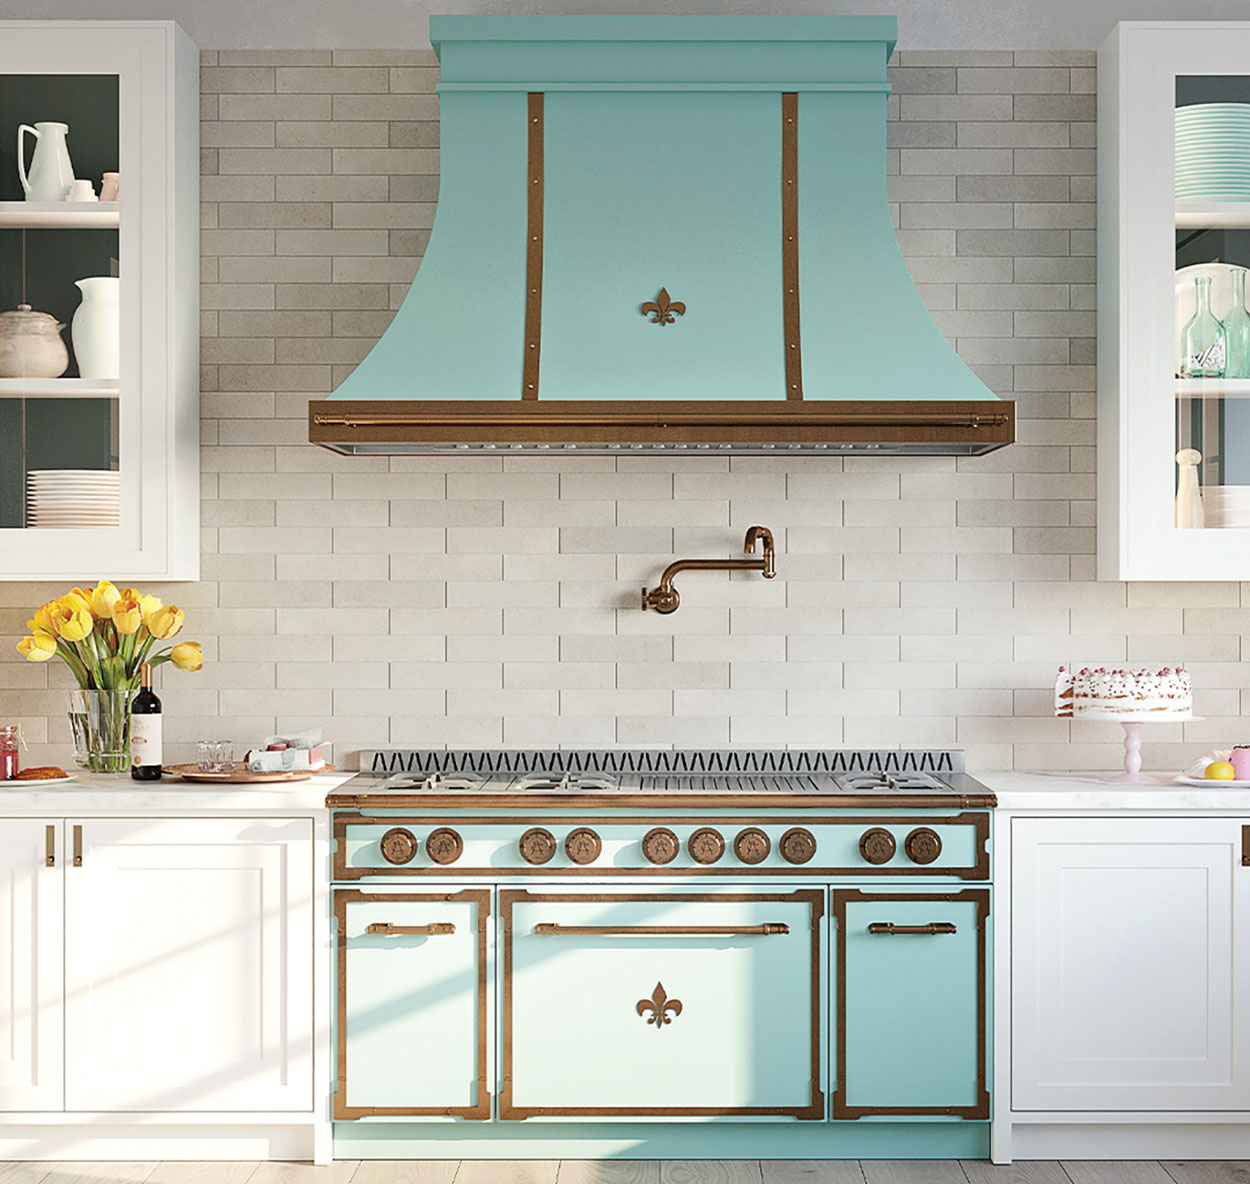 kitchen with white cabinets, white subway tile walls and backsplash, and retro style Tiffany blue French range and hood from L'Atelier Paris